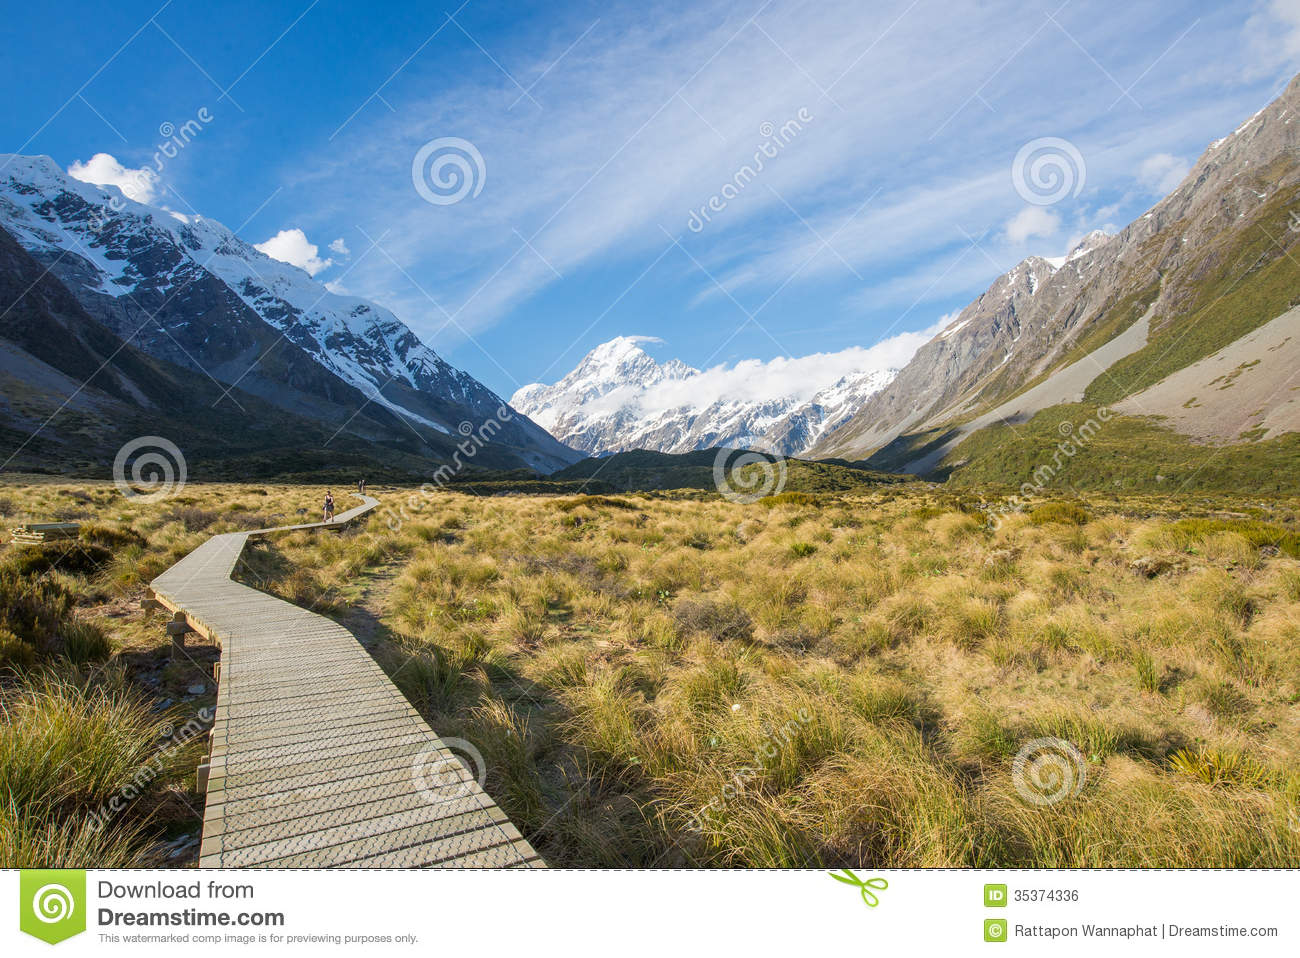 map of new zealand south island with Royalty Free Stock Image Walking Track Mount Cook New Zealand Highest Mountain Reaching Metres Lies Southern Alps Mountain Range Image35374336 on OpihiMap furthermore H14 besides A Trip Around Nova Scotia Halifax The 100 Year Anniversary Of The Titanic Sinking also 20110819 Lowlands Entrance Biddinghuizen The  herlands moreover 9112326315.